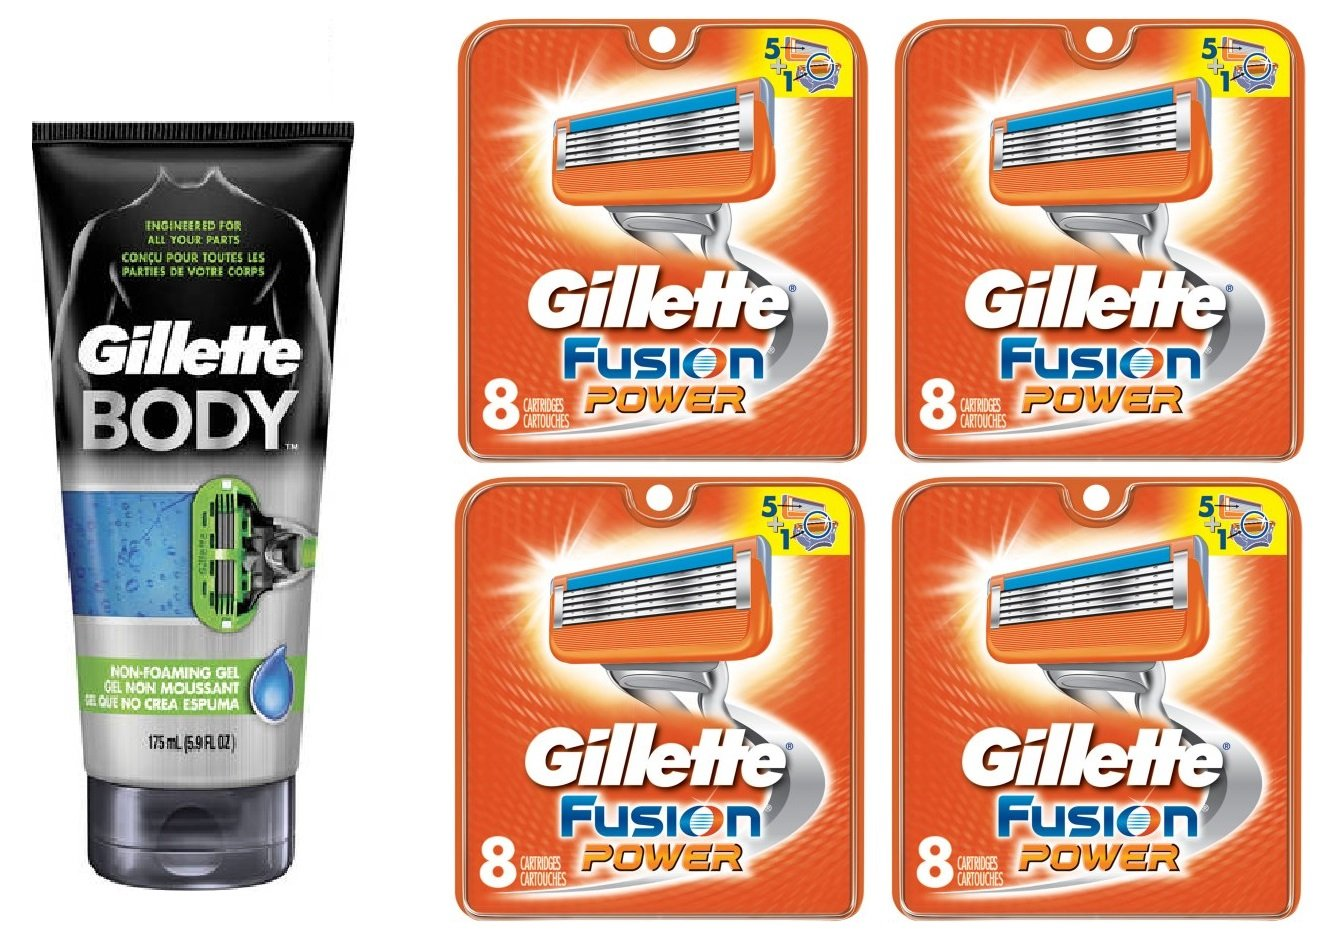 Gillette Body Non Foaming Shave Gel for Men, 5.9 Fl Oz + Fusion Power Refill Blades 8 Ct (4 Pack) + FREE Assorted Purse Kit/Cosmetic Bag Bonus Gift